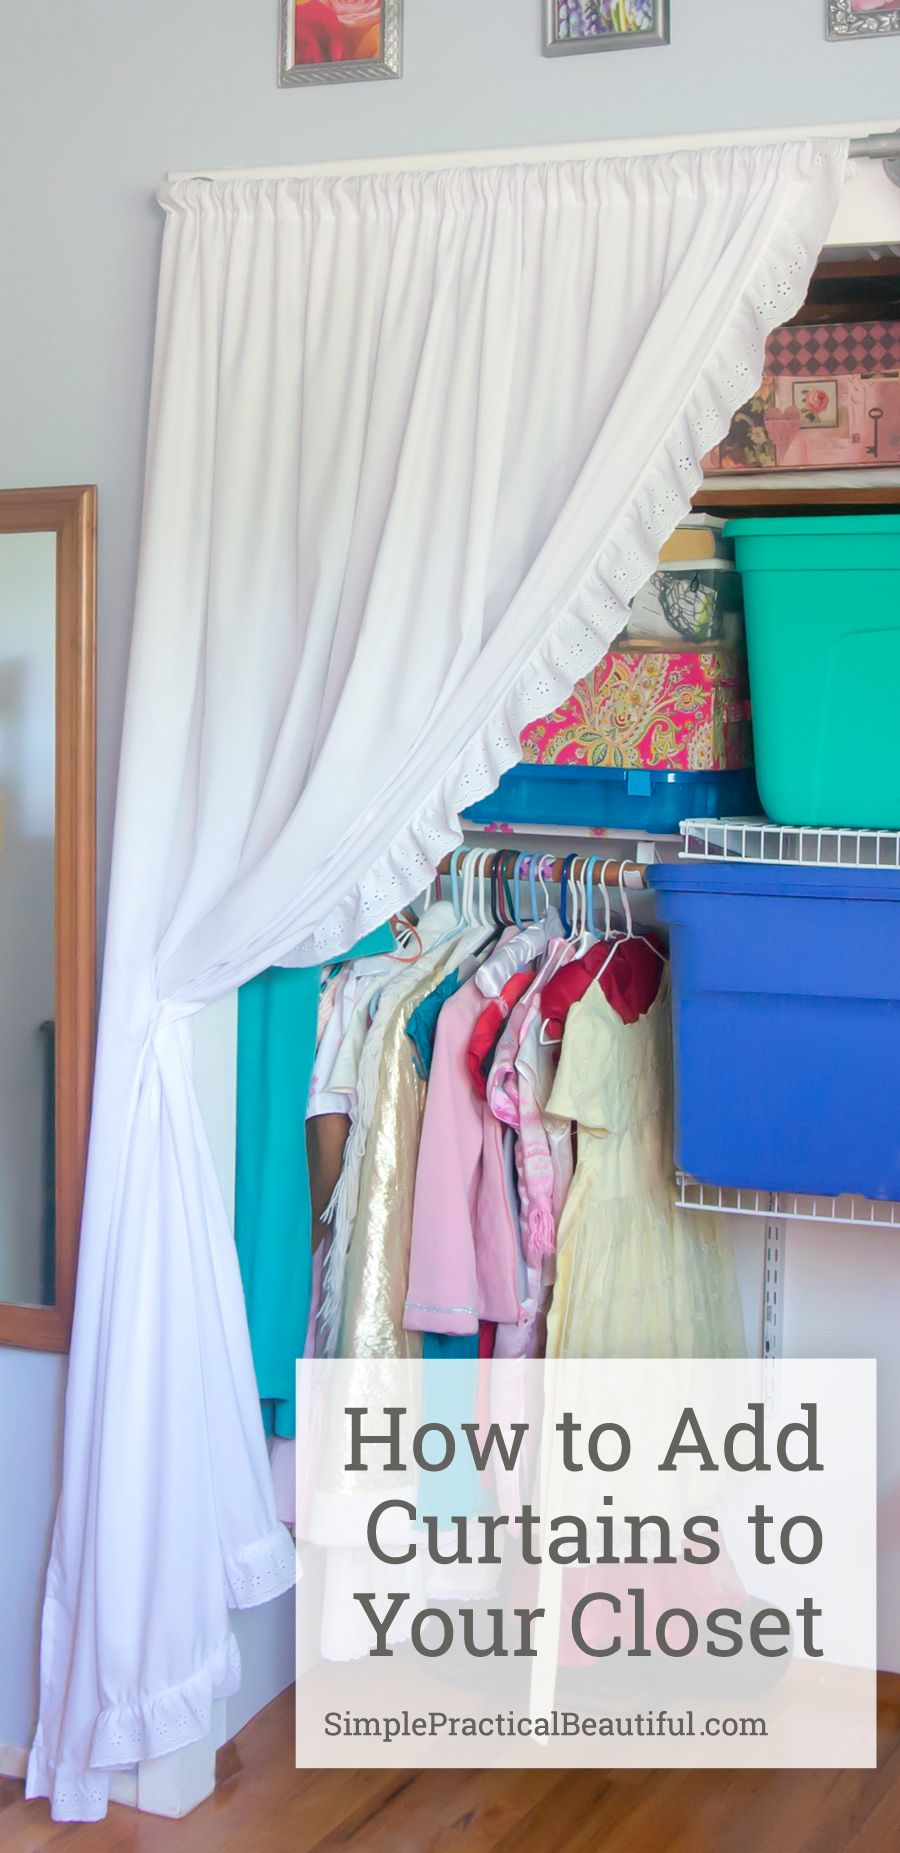 How to make simple curtains - Closet Curtains Made From Sheets